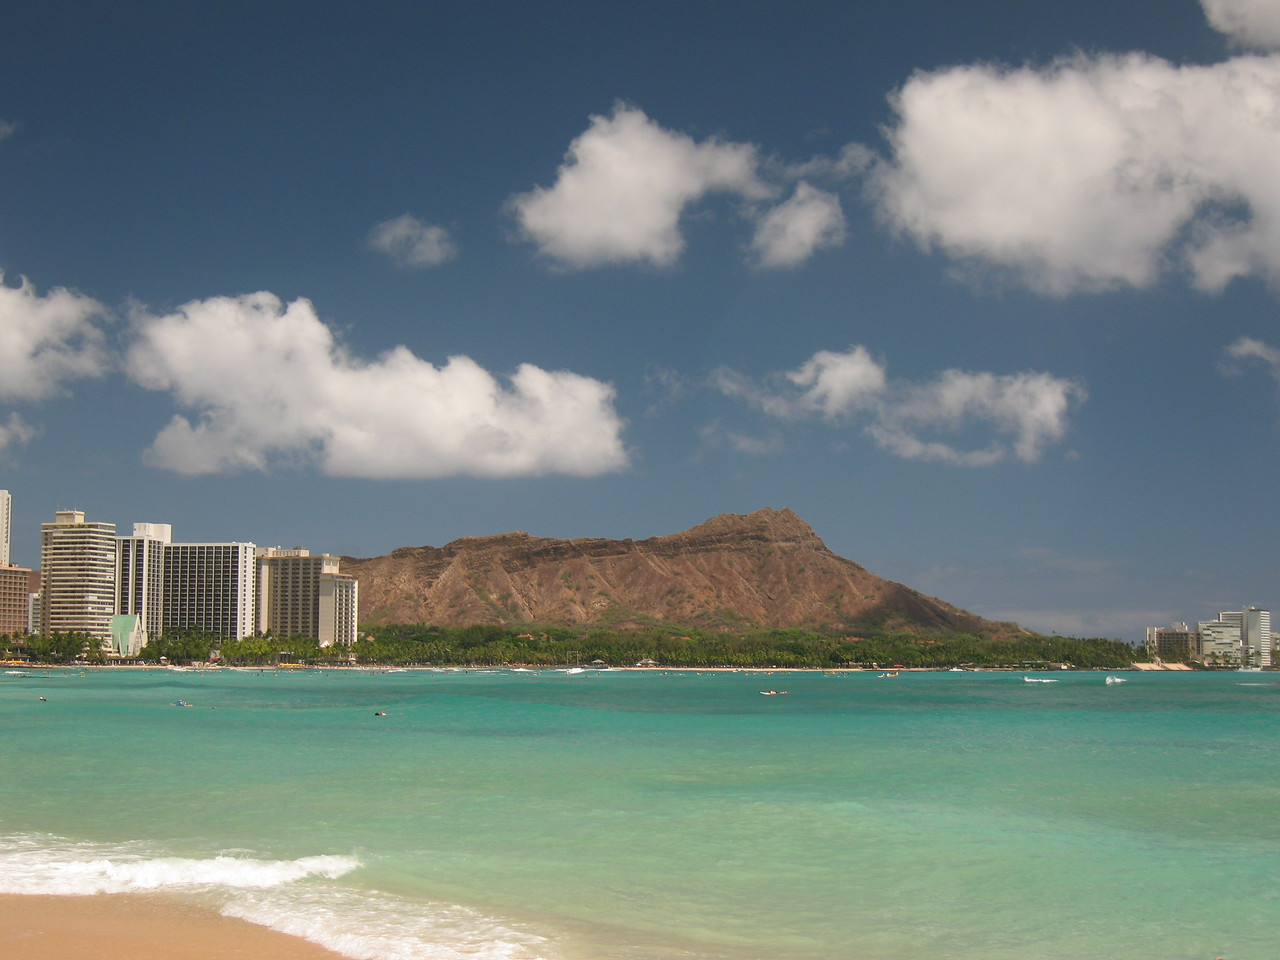 Diamondhead from Waikiki Beach in the afternoon on August 3rd.